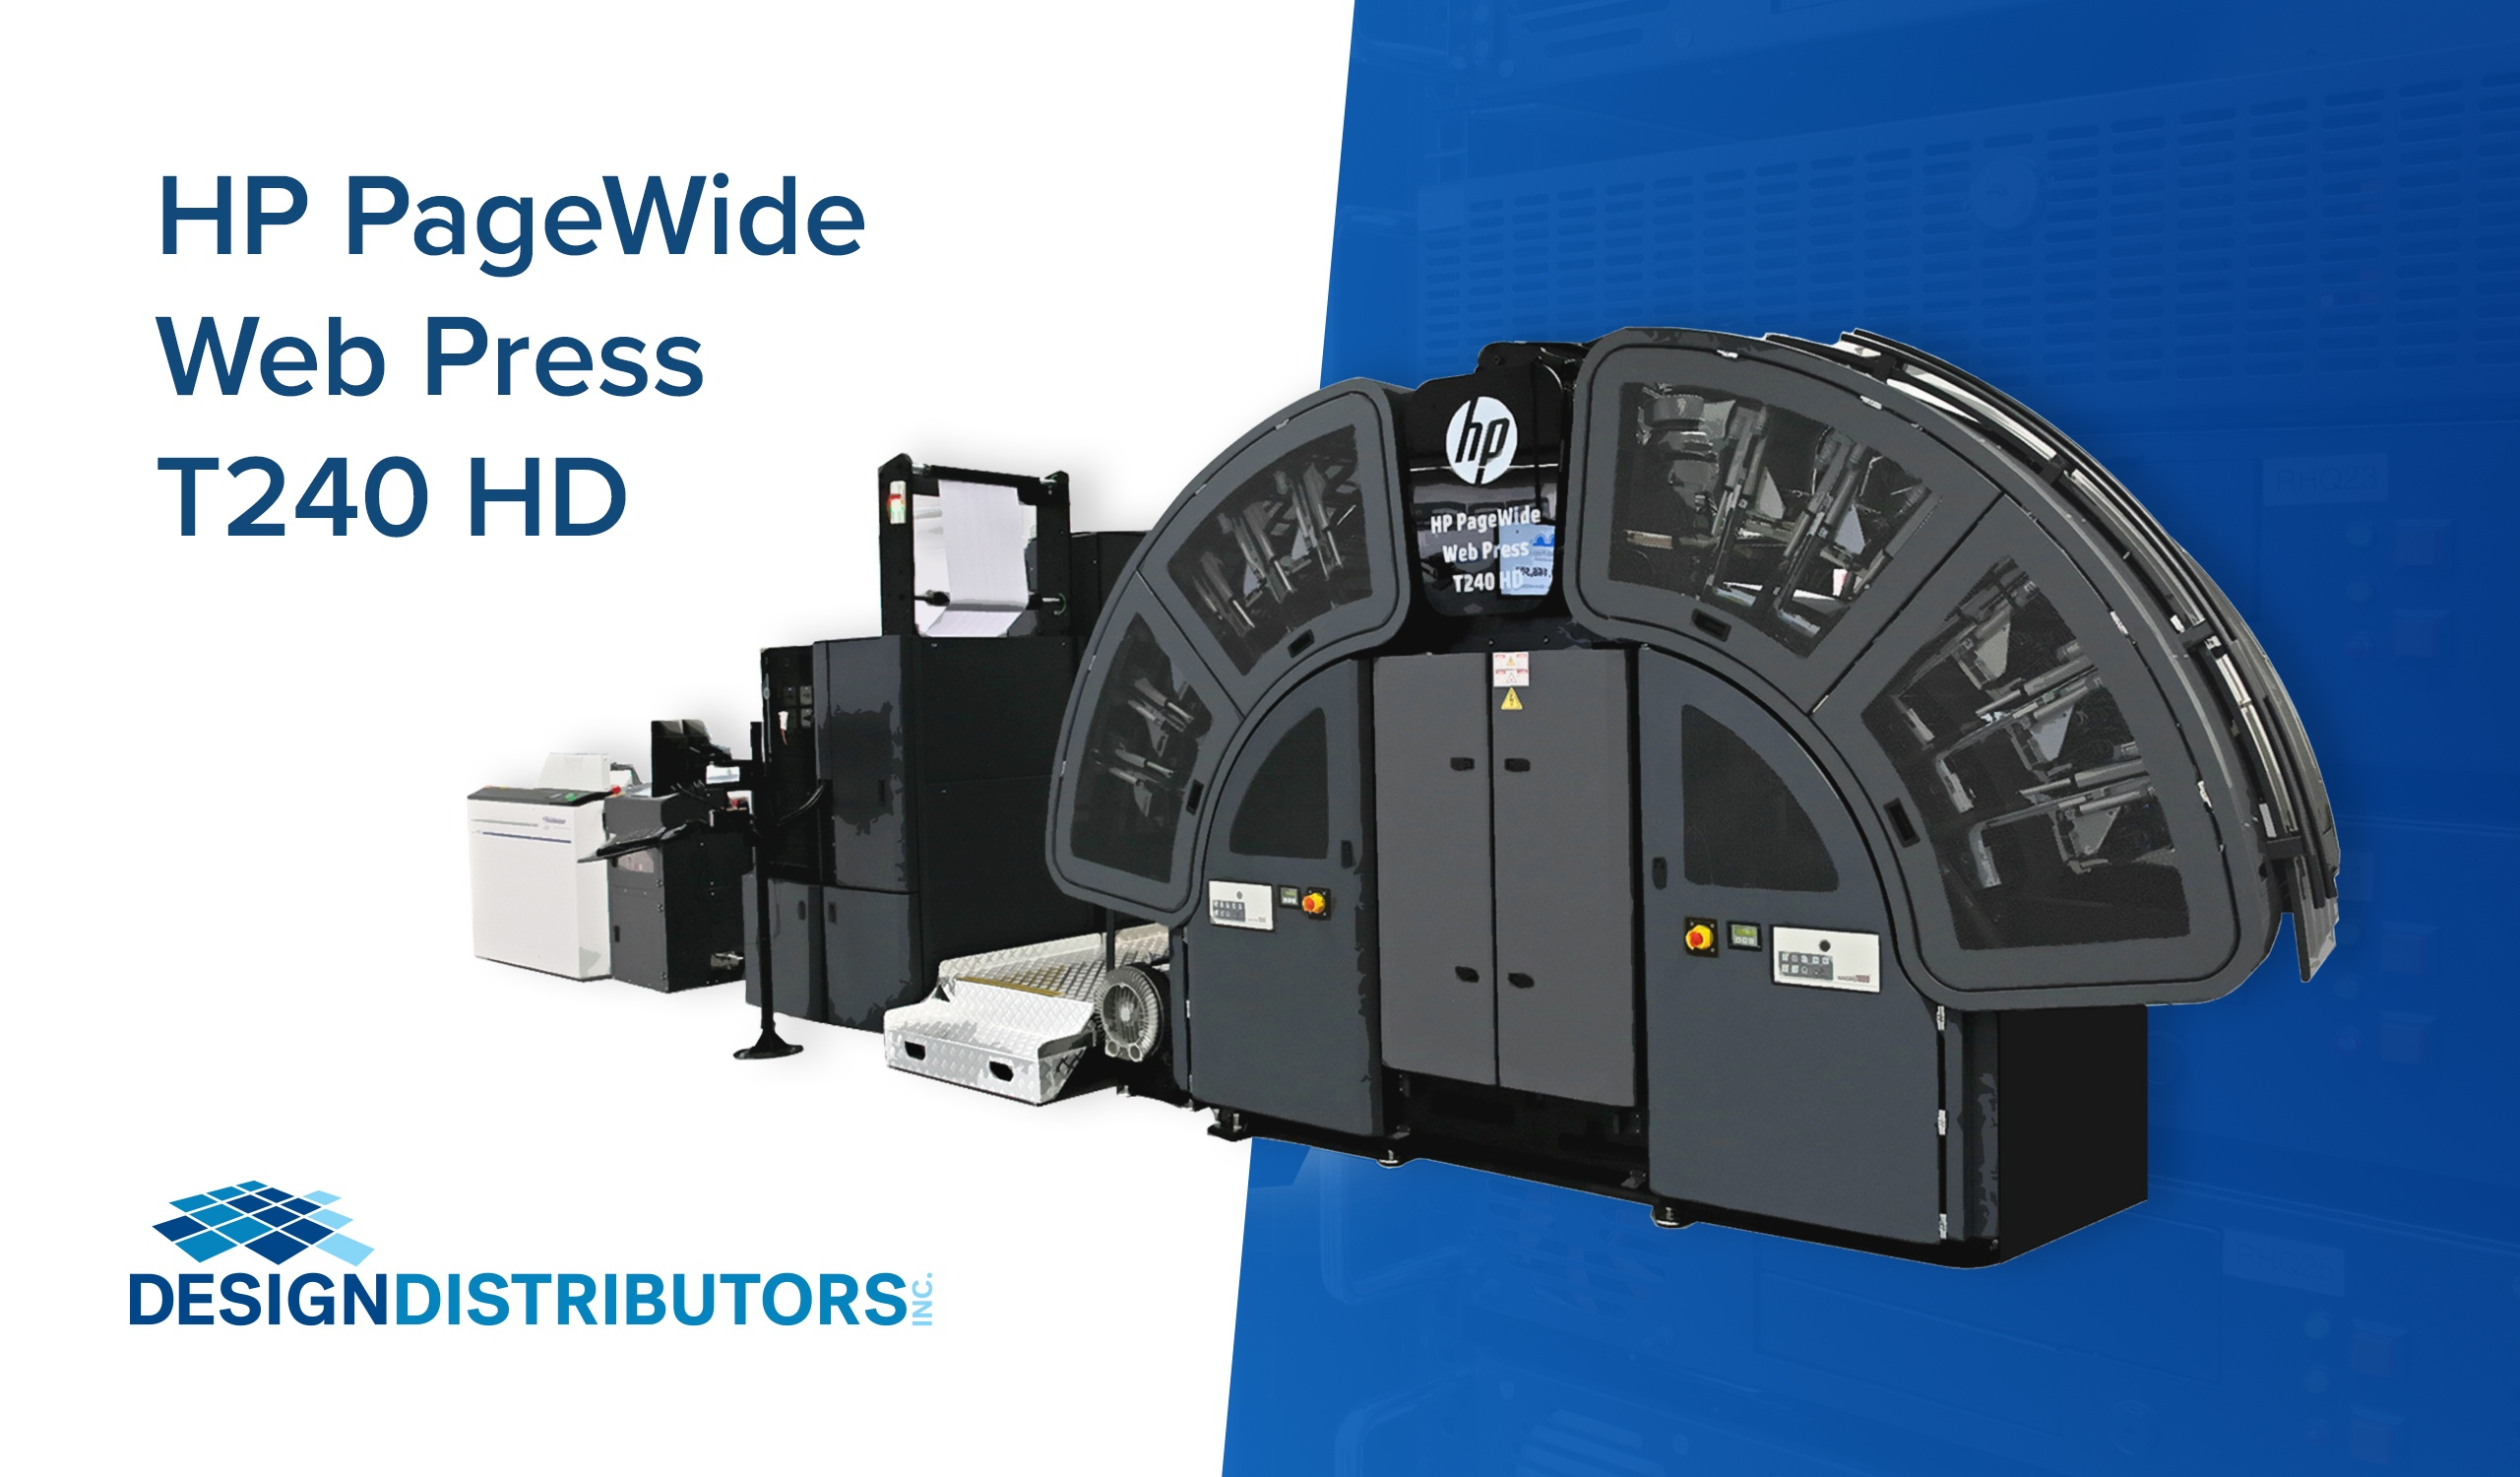 Design Distributors Introduces New HP PageWide Web Press T240 HD